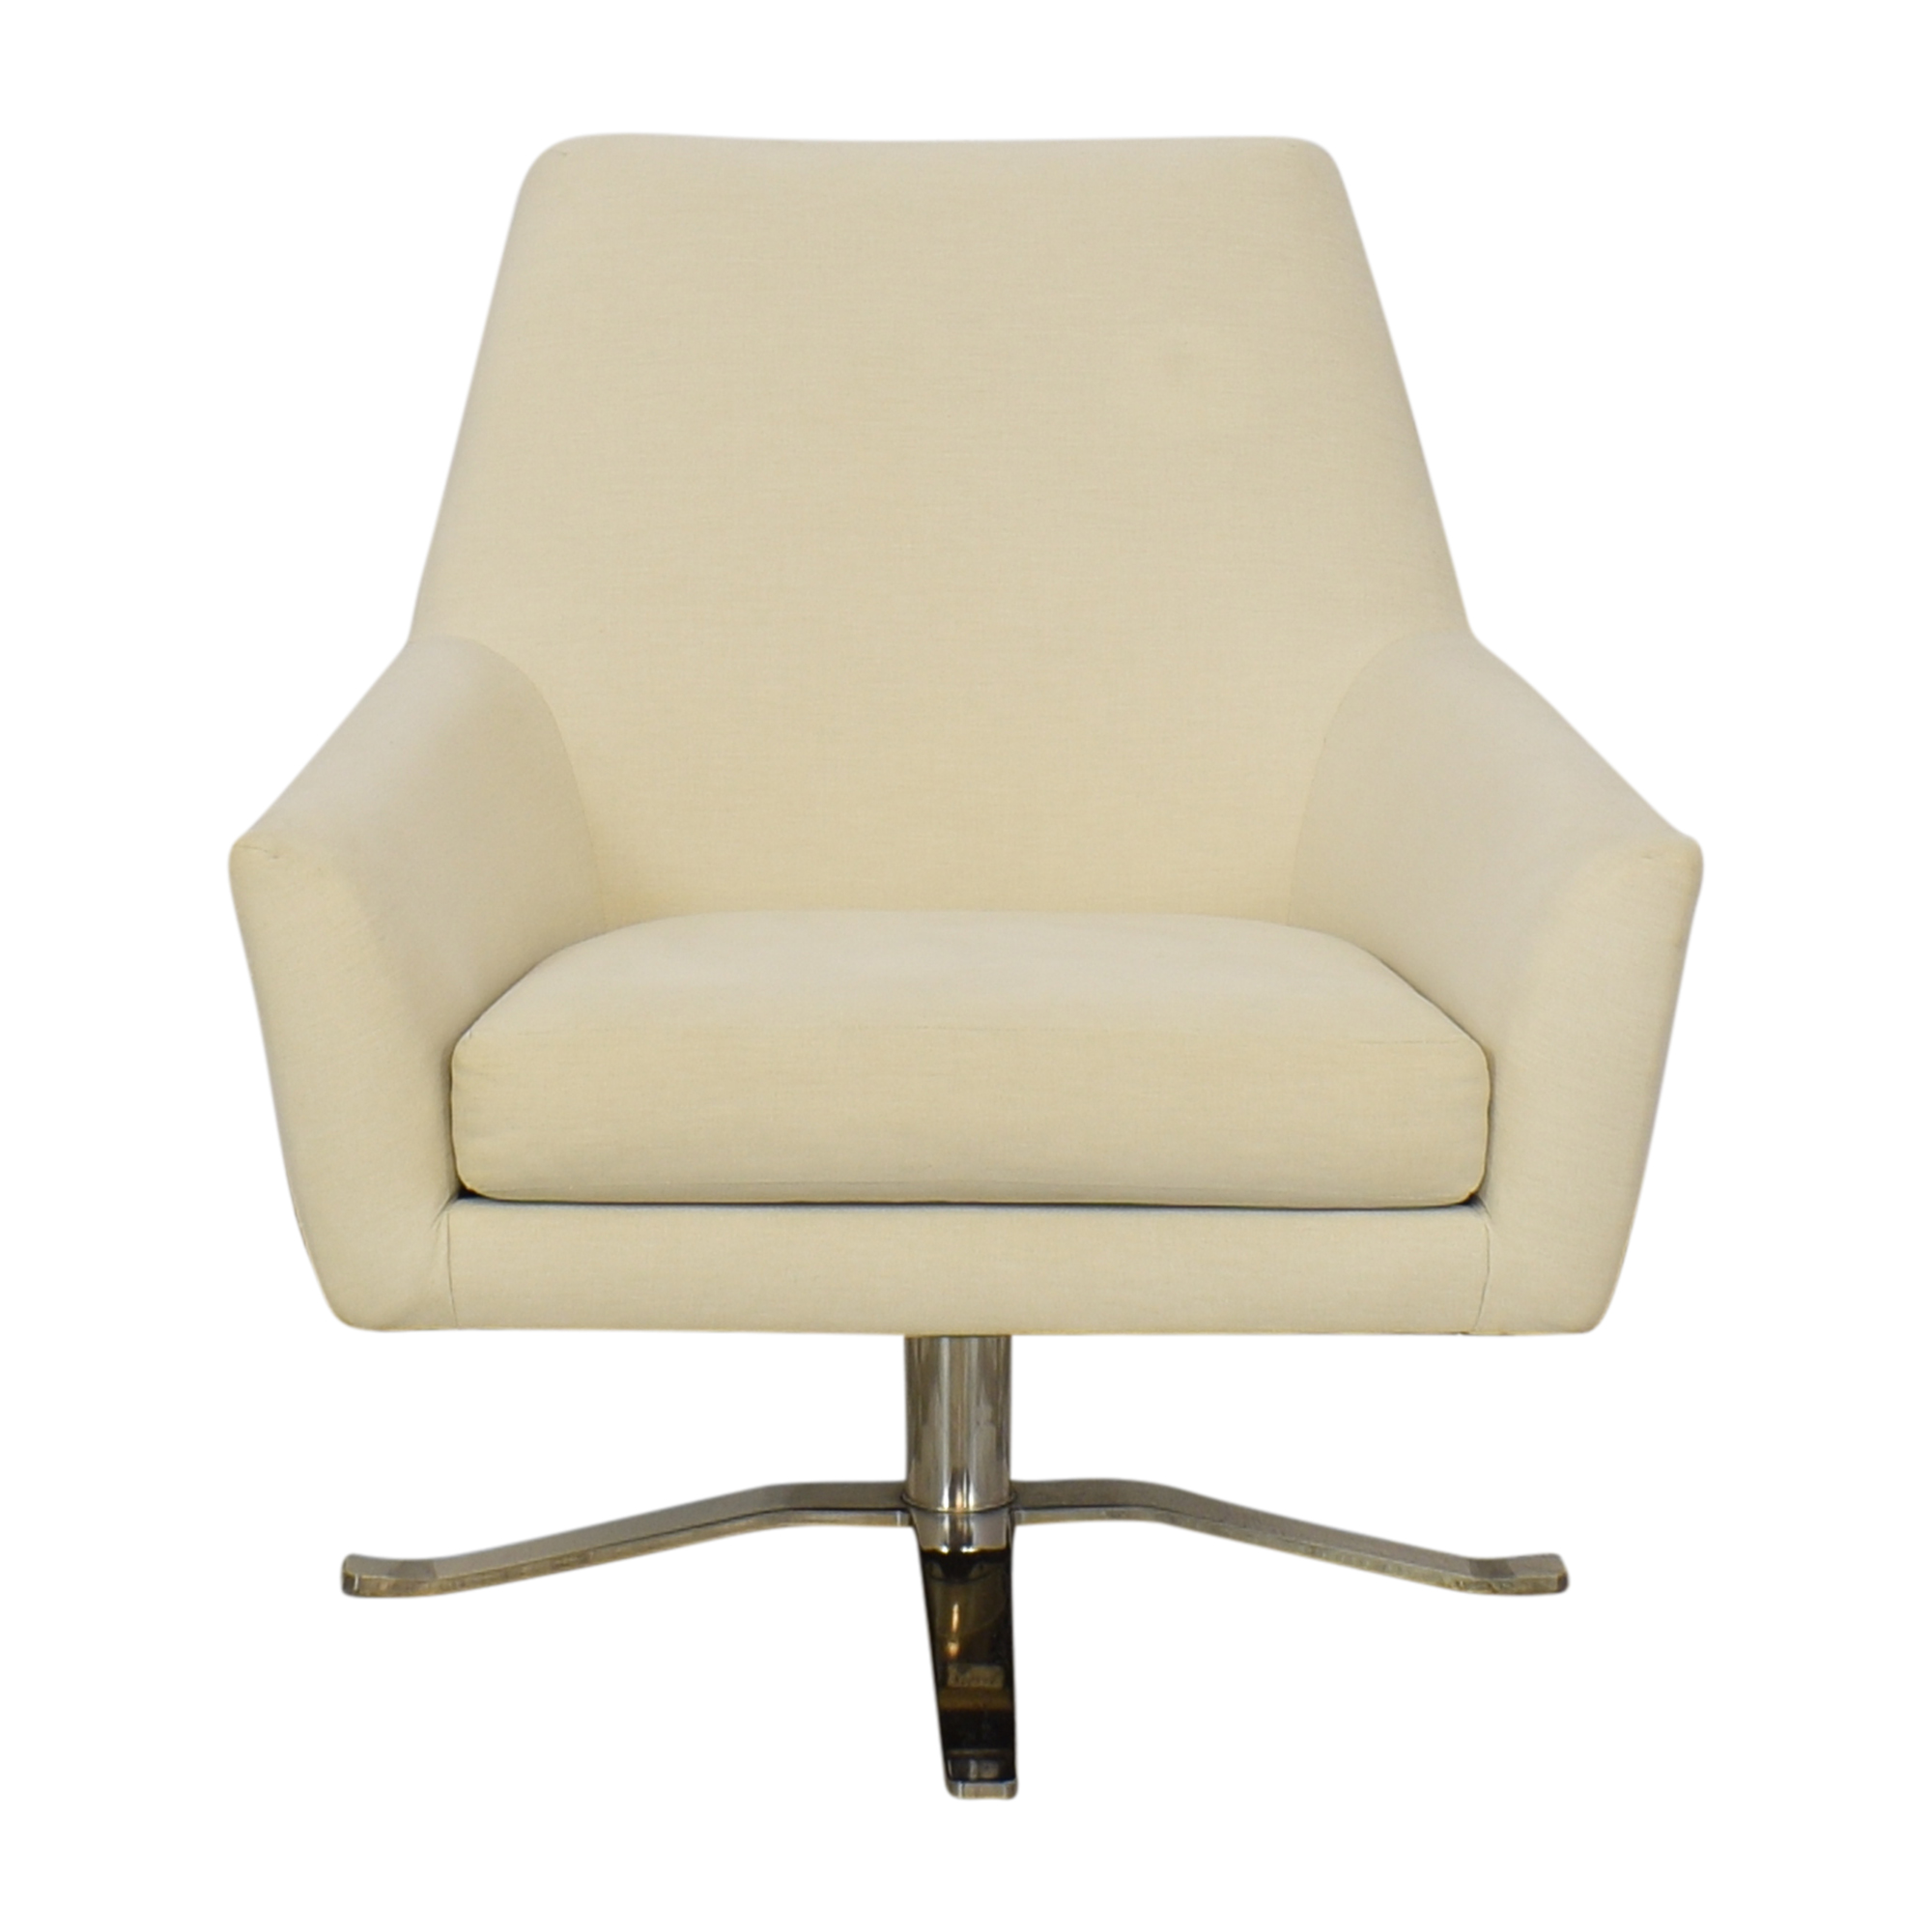 West Elm West Elm Lucas Swivel Chair